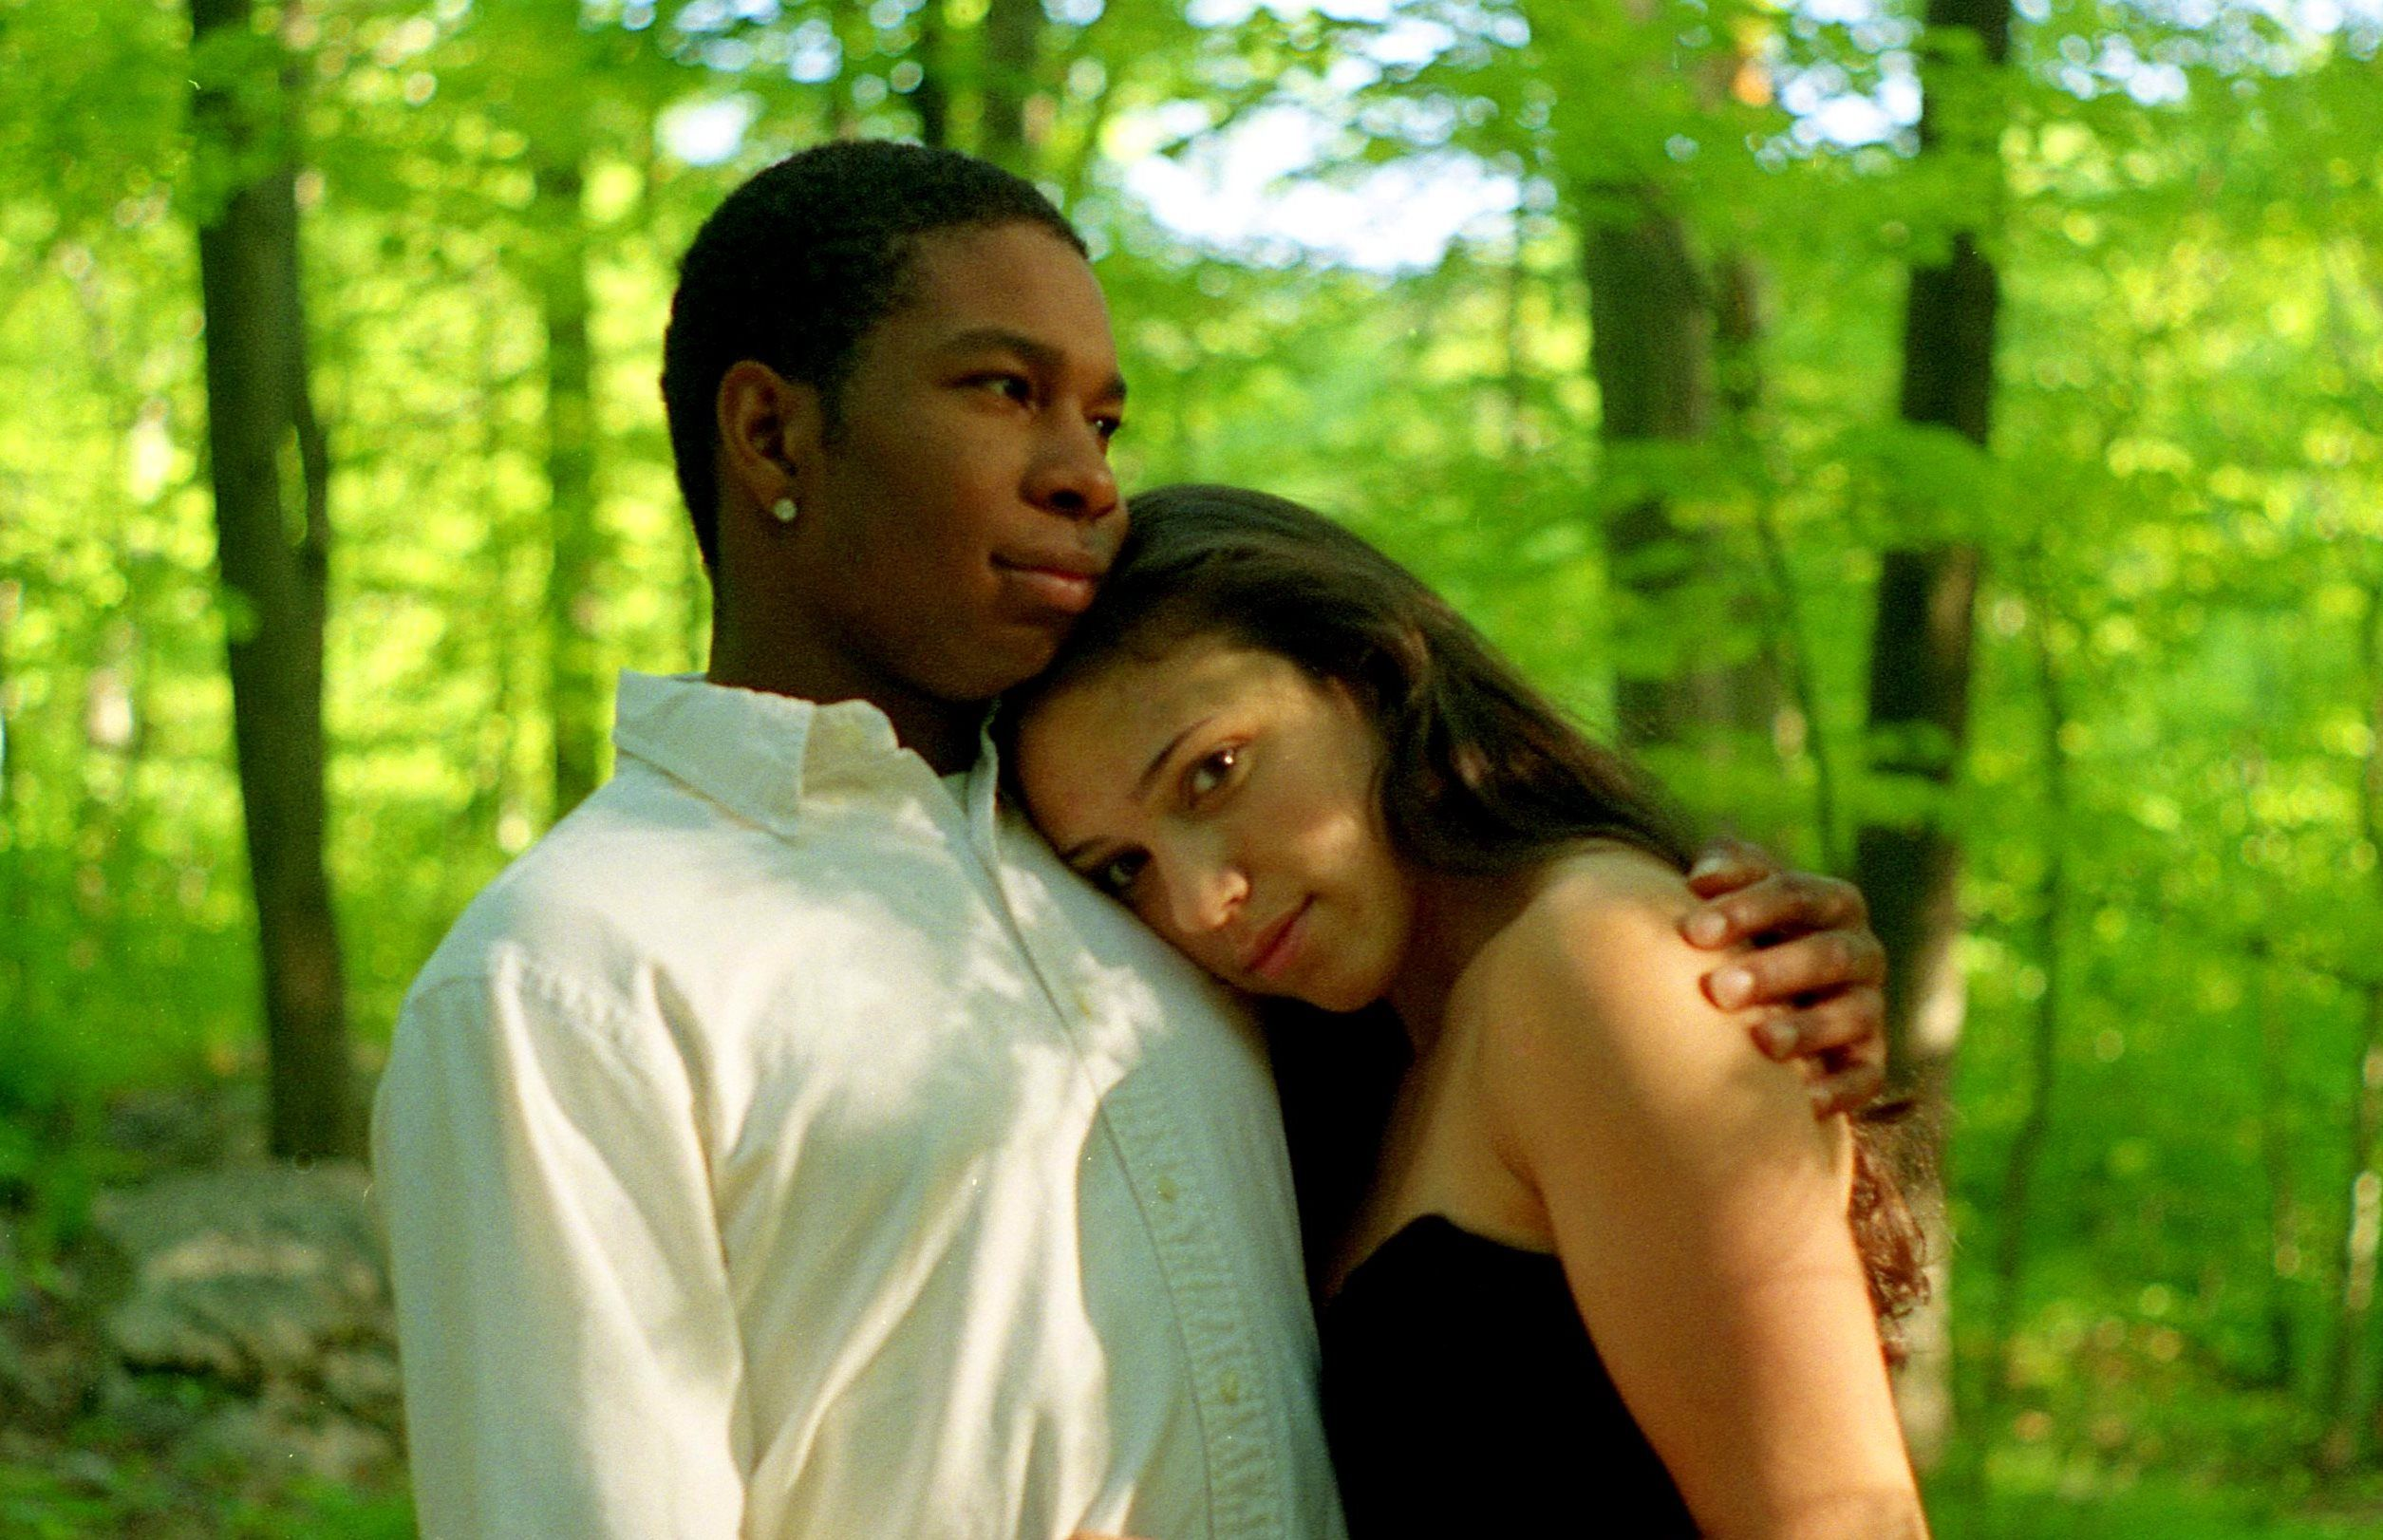 How do Americans really feel about interracial couples